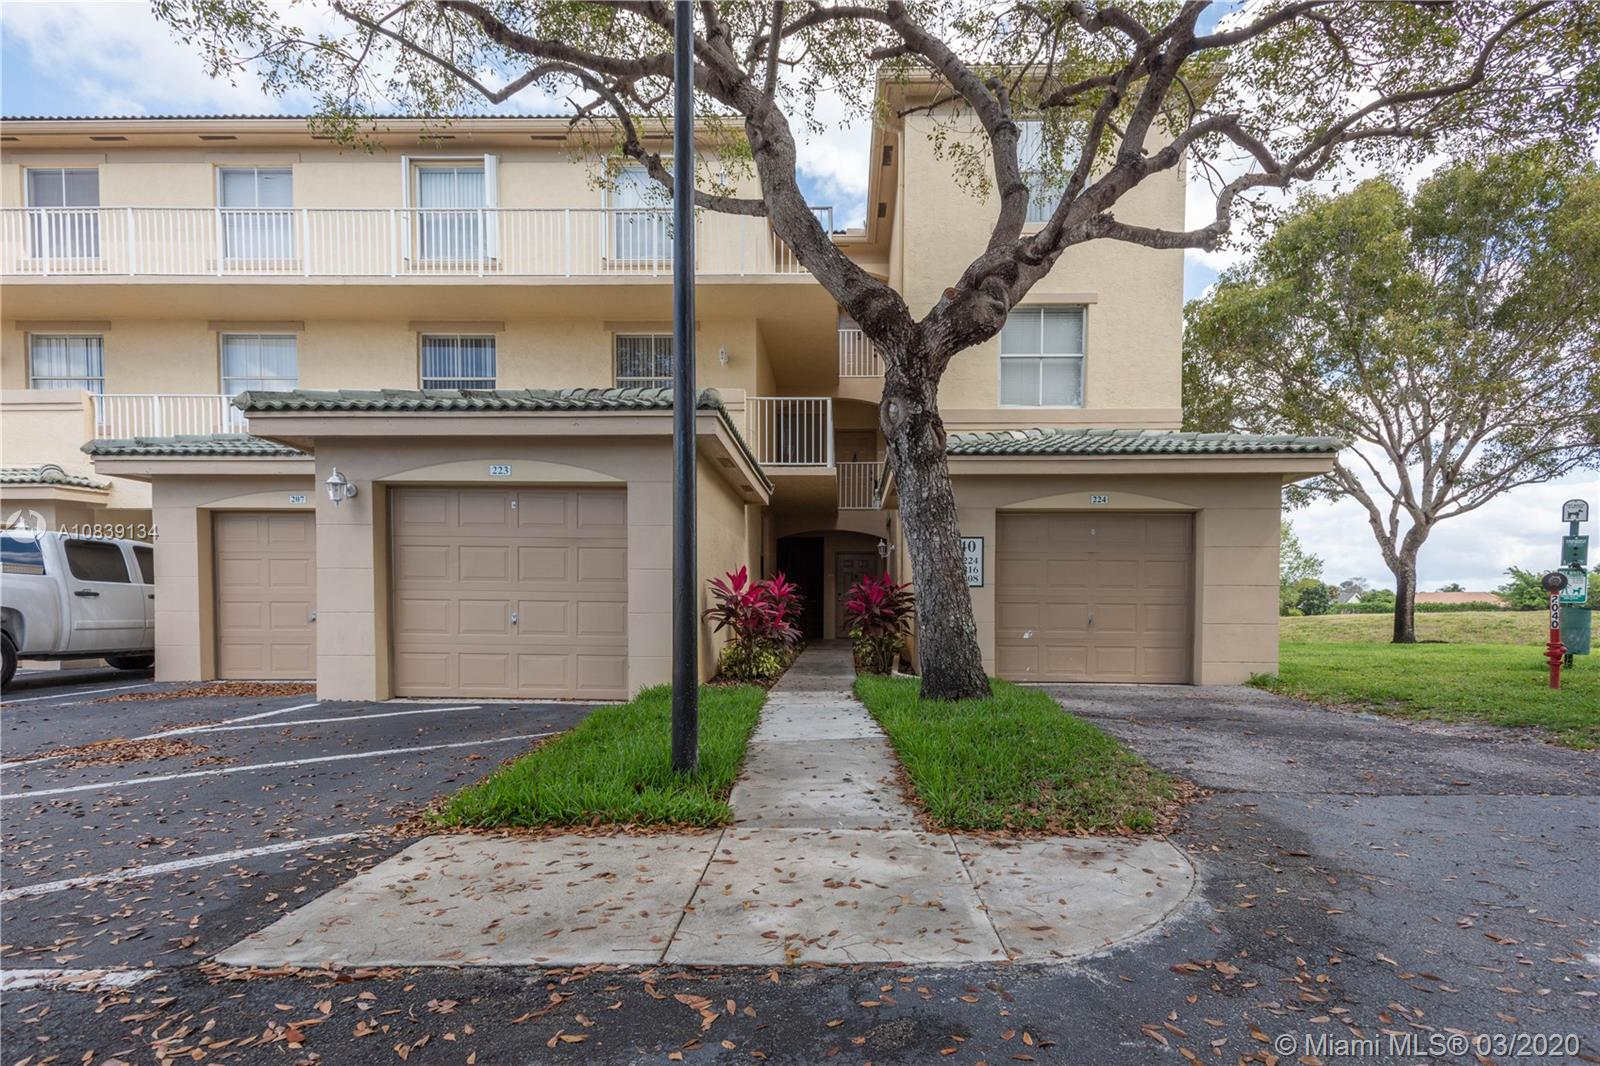 Listing A10839134 - Large Photo # 1